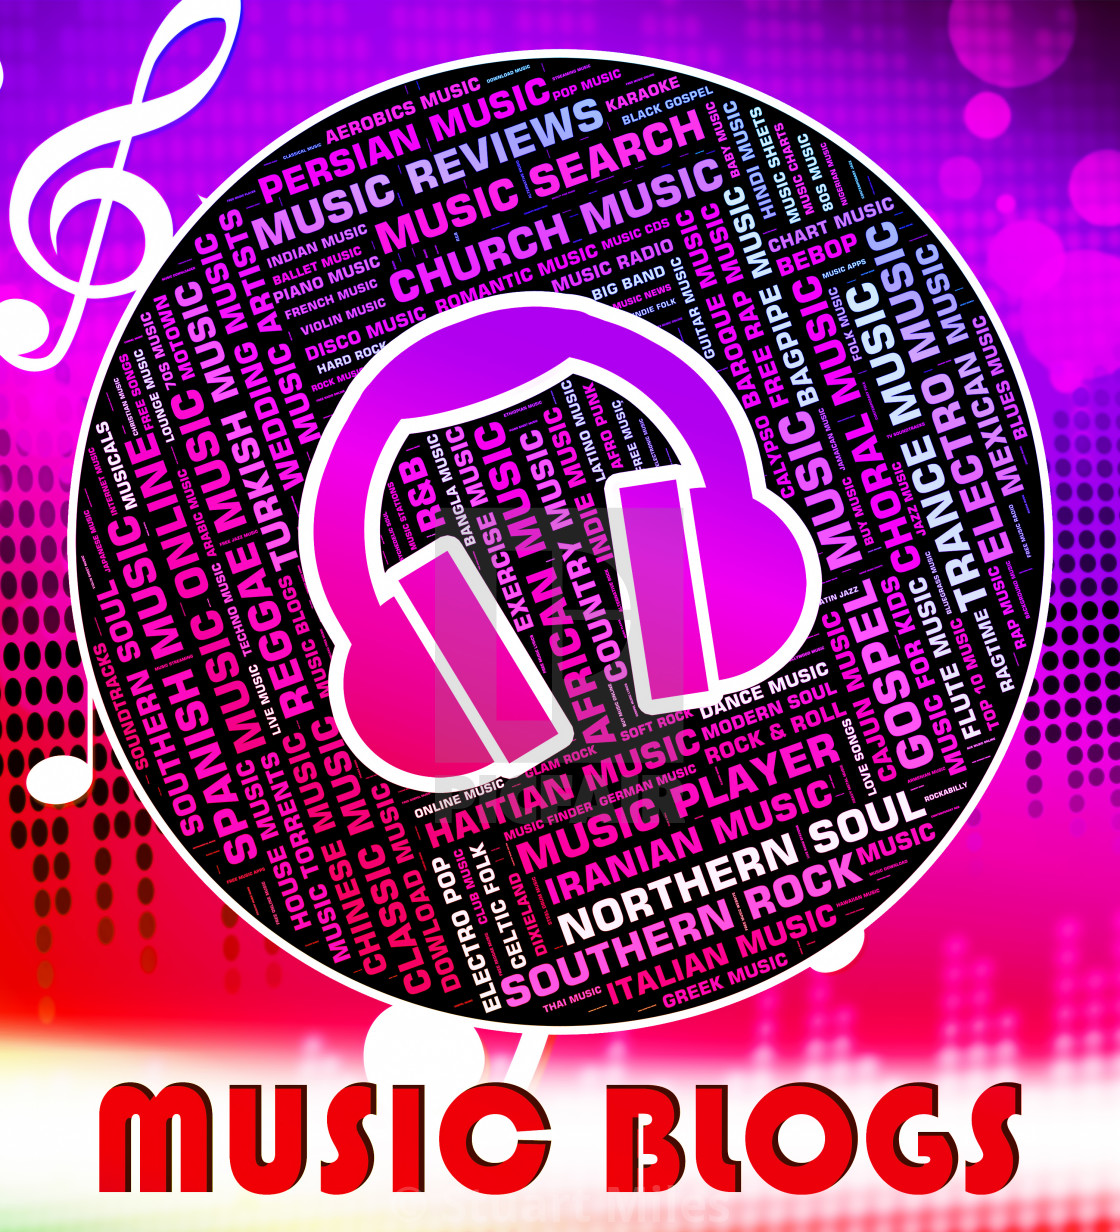 Music Blogs Shows Sound Track And Acoustic - License